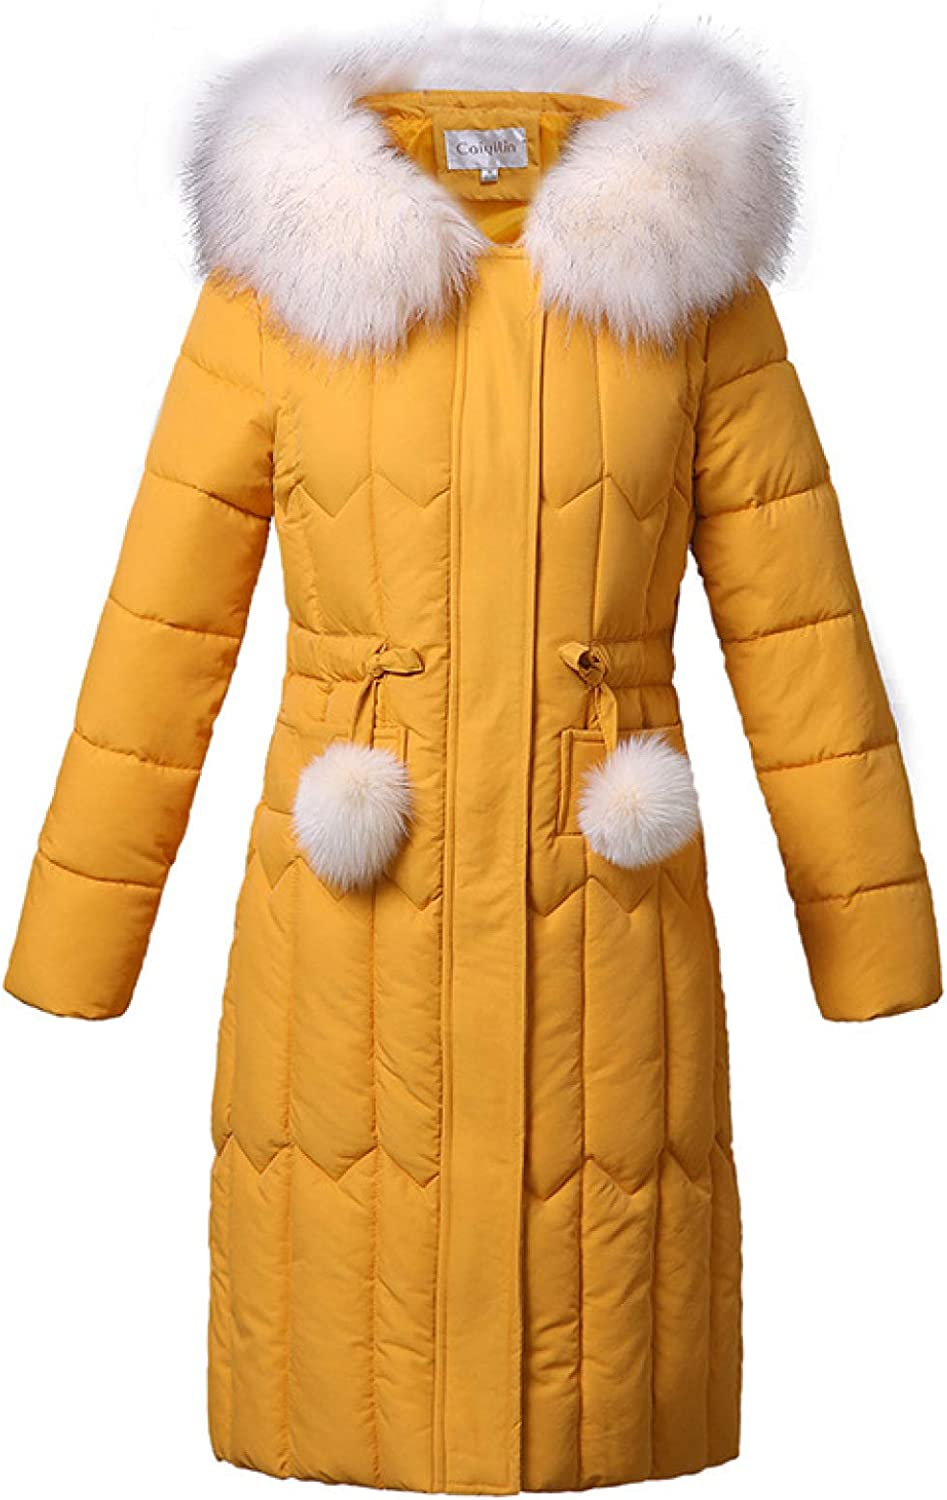 Women's Thickened Winter Quilted Coat Lightweight Puffer Jacket with Faux Fur Trim Hood